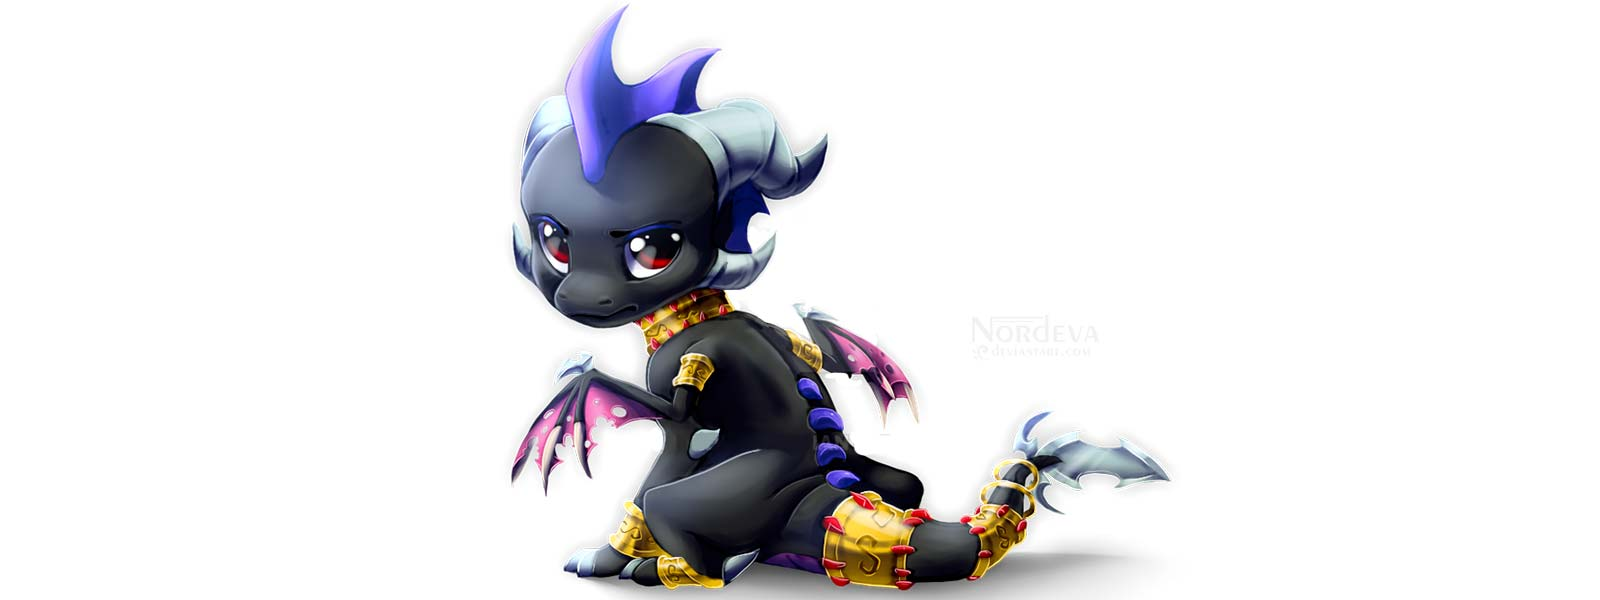 Dragon chibi